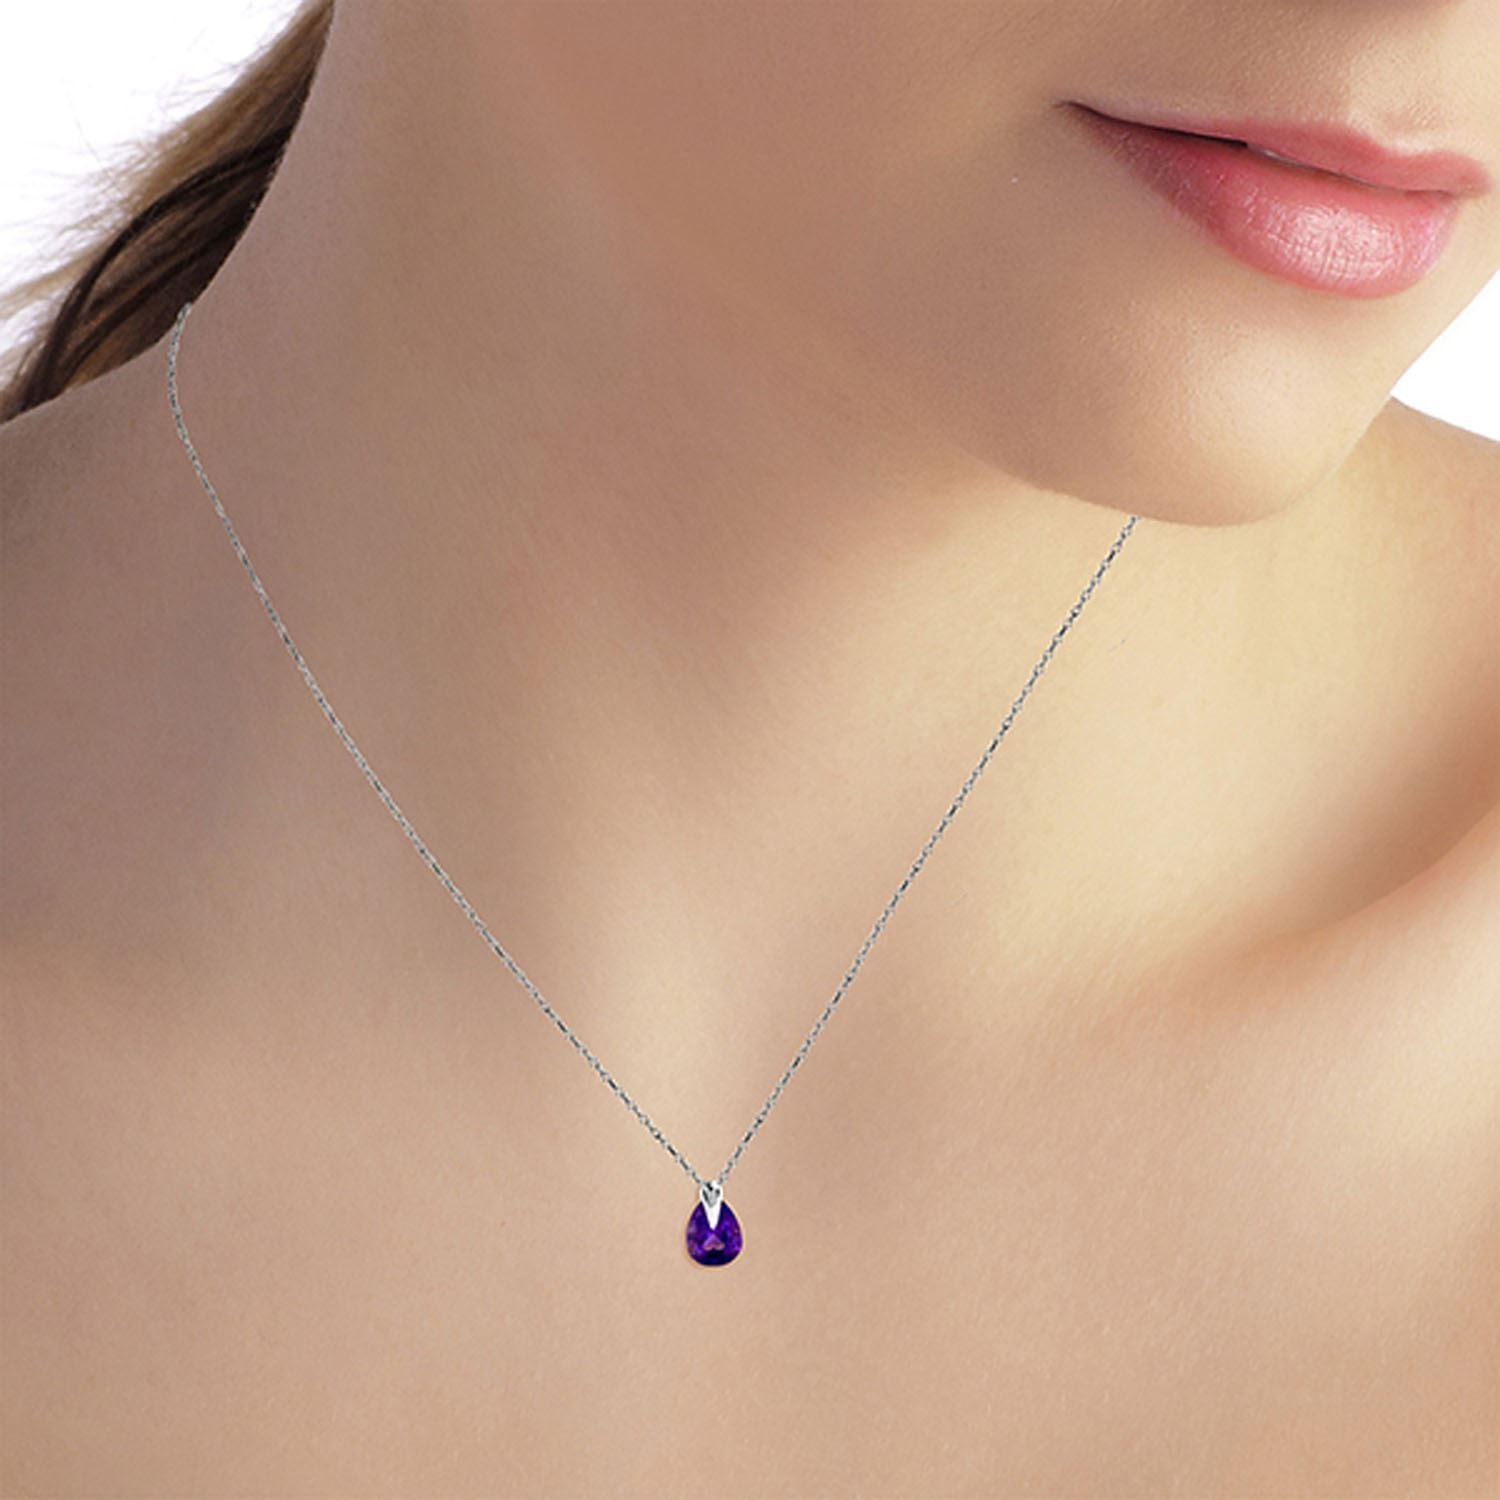 ALARRI 0.68 Carat 14K Solid White Gold Outline Of Life Amethyst Necklace with 18 Inch Chain Length